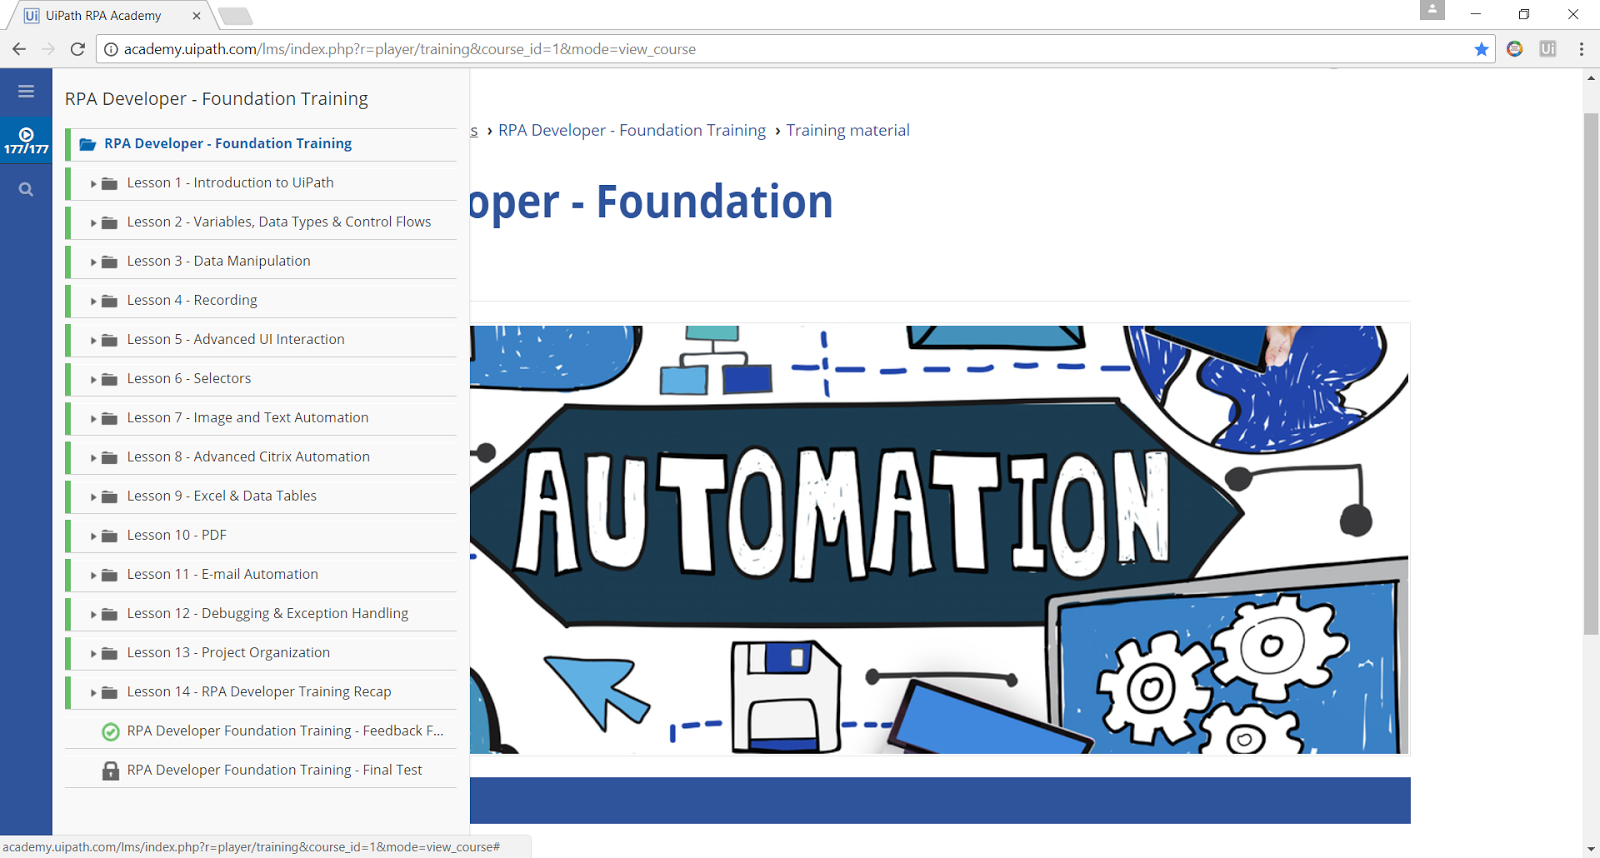 Graduated the RPA Developer - Foundation Training for UIPath